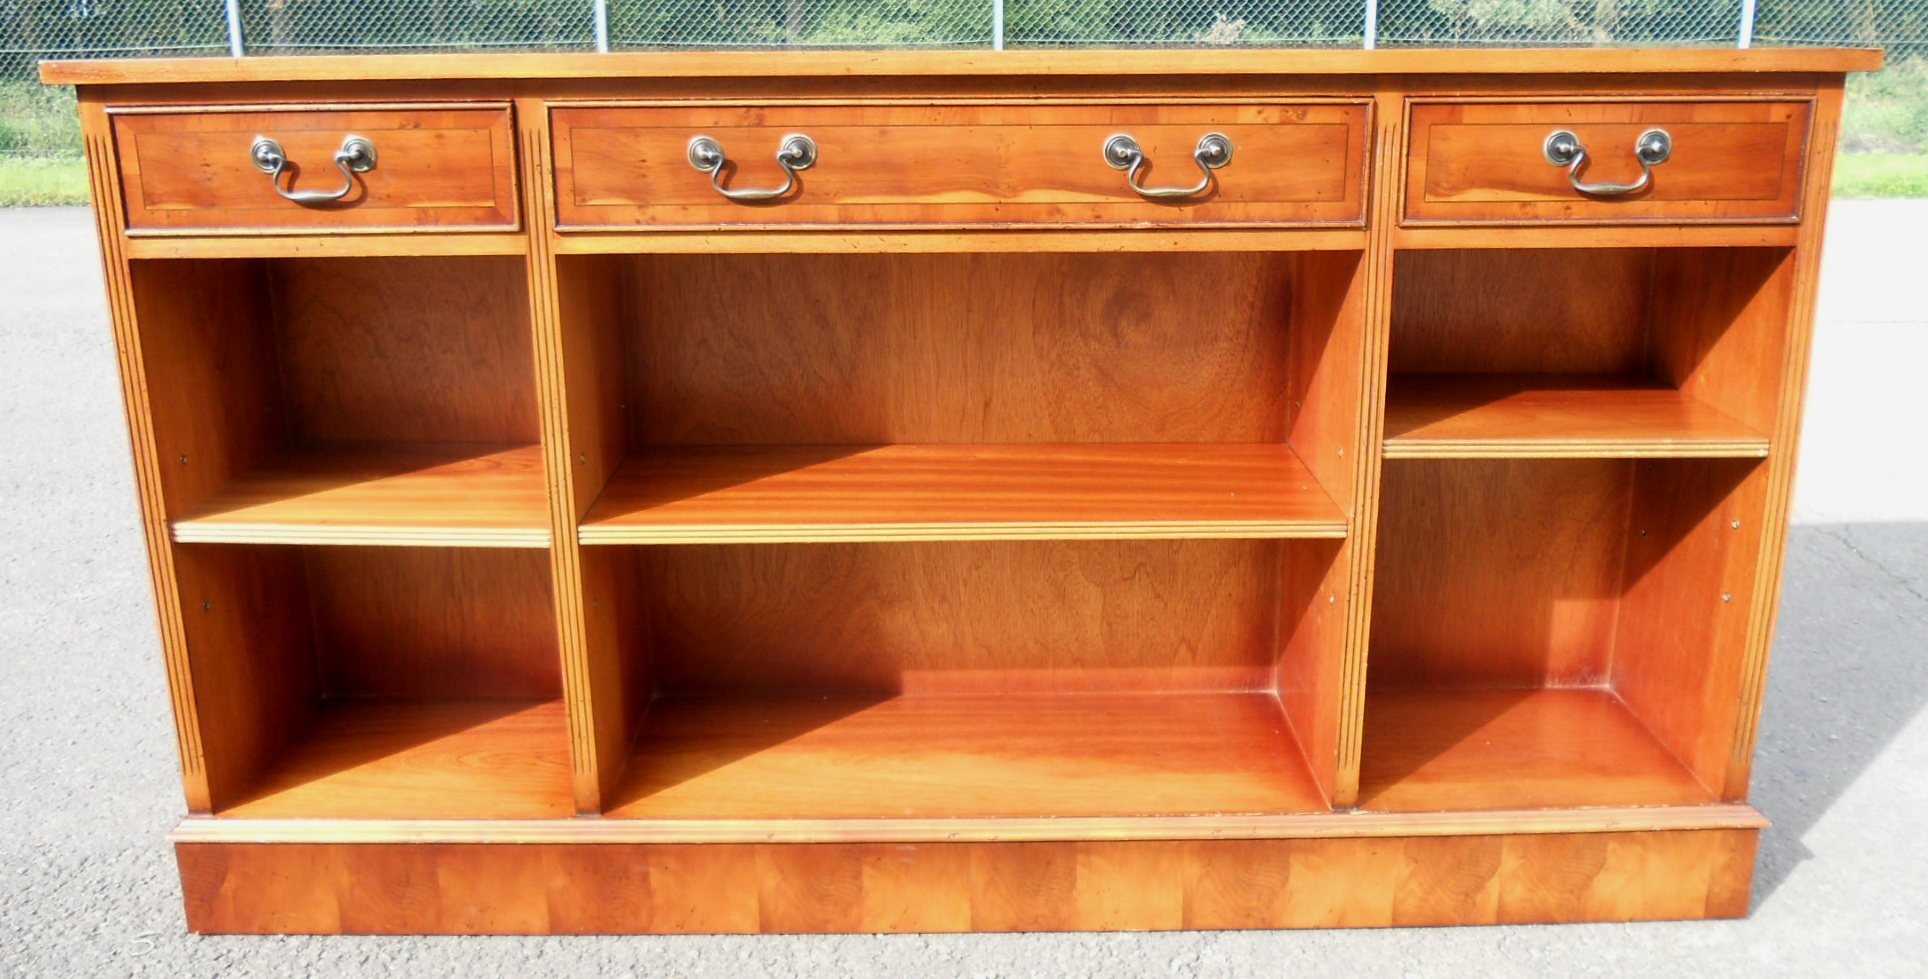 Yew Wood Narrow Long Open Bookcase